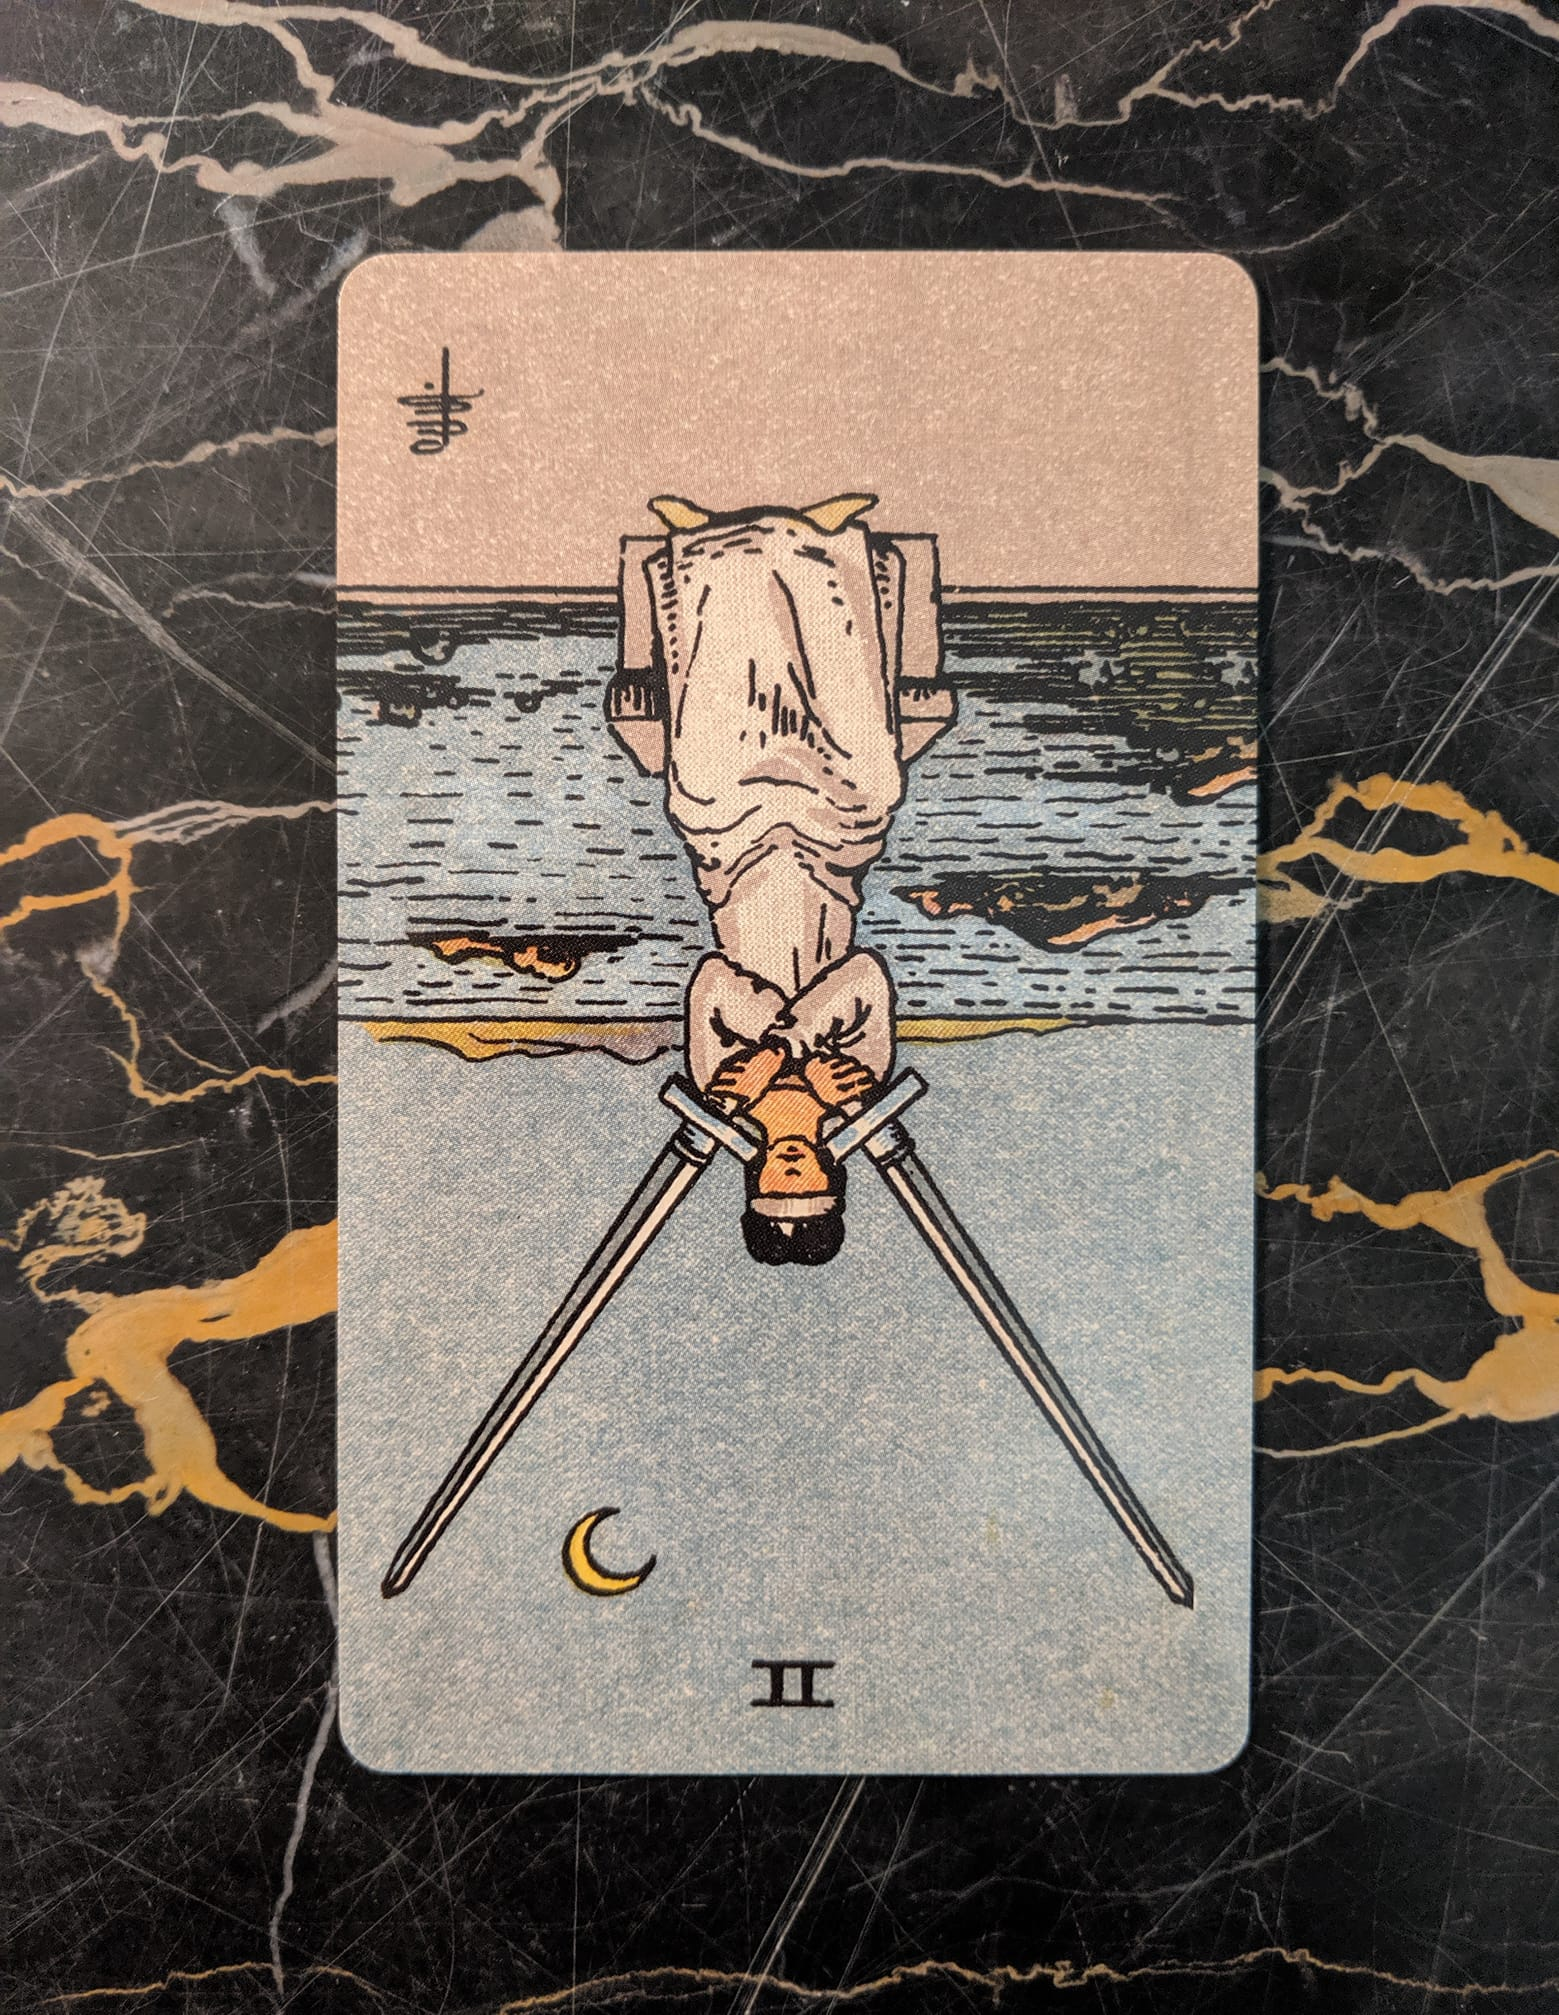 This card is from the Rider-Waite deck, published in 1909, borderless edition